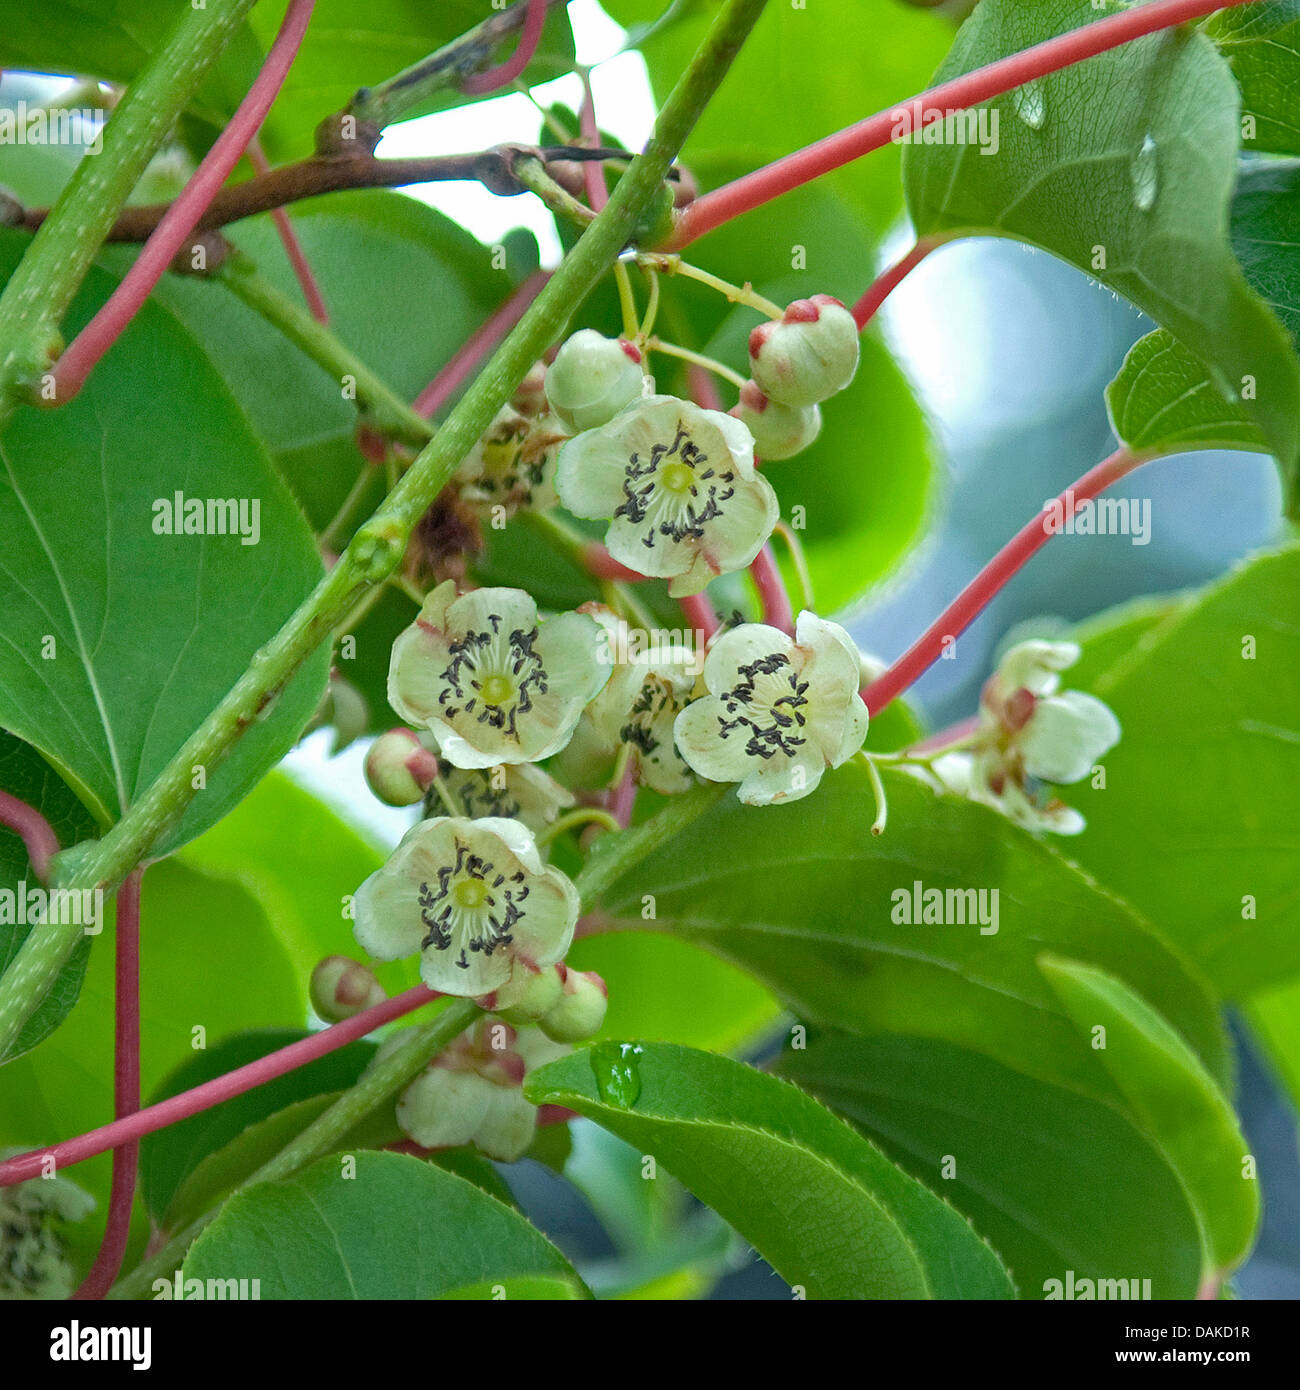 kiwi (Actinidia arguta 'Milano'), male flowers, Germany Stock Photo